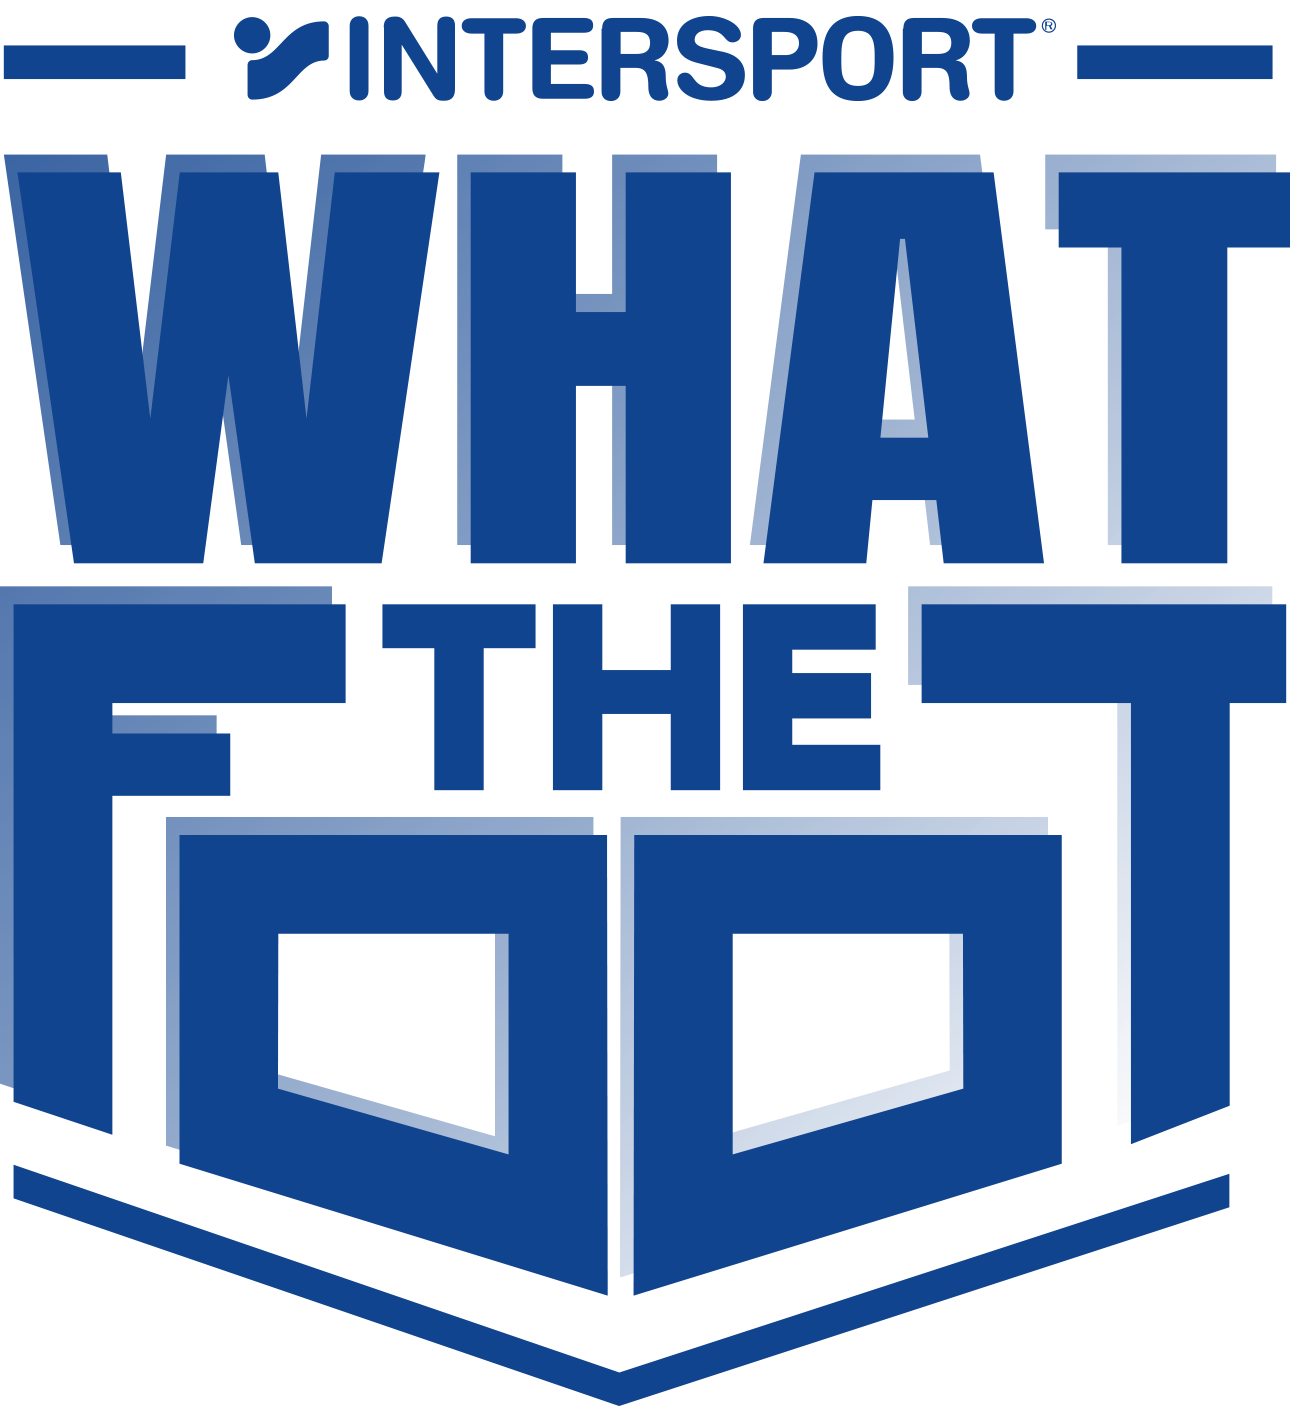 logo What the foot